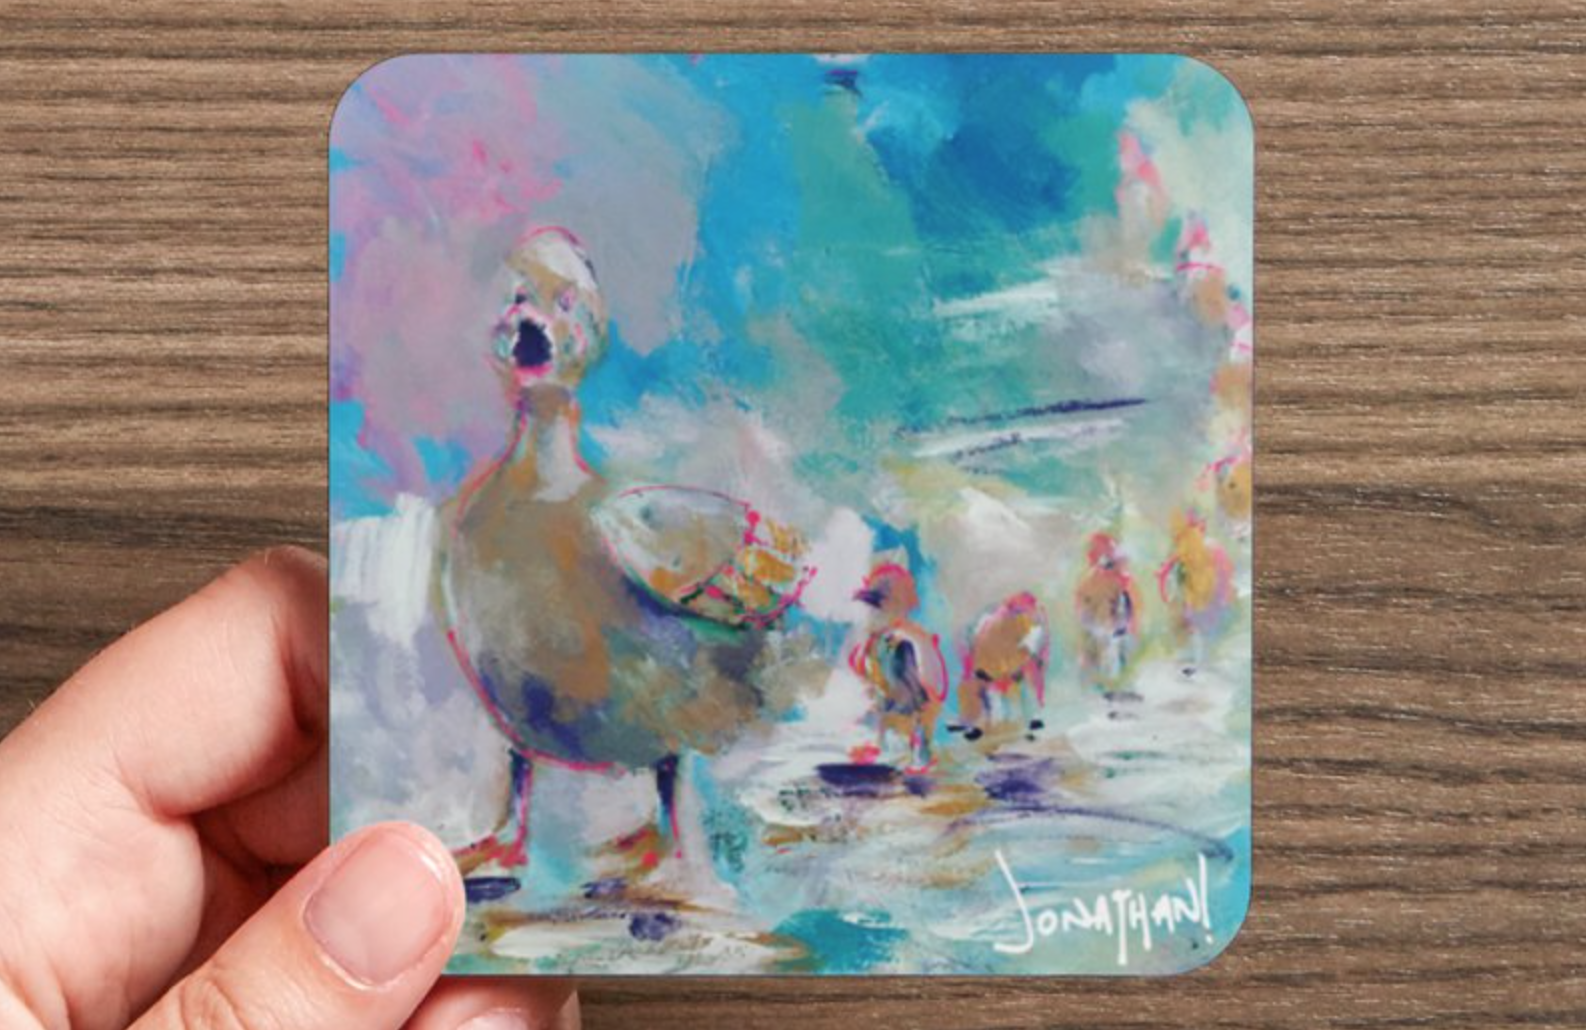 Coasters - These high gloss, corked backed coasters are colorful reproductions of my original artwork. Each coaster makes a unique addition to any room, and a great gift.For each coaster sold, I donate one to the 'Painter Without Borders' Program at Massachusetts General Hospital Cancer Center and Boston Medical Center Cancer Center. Thanks to your support we've given away over 750 coasters!Approximately 4